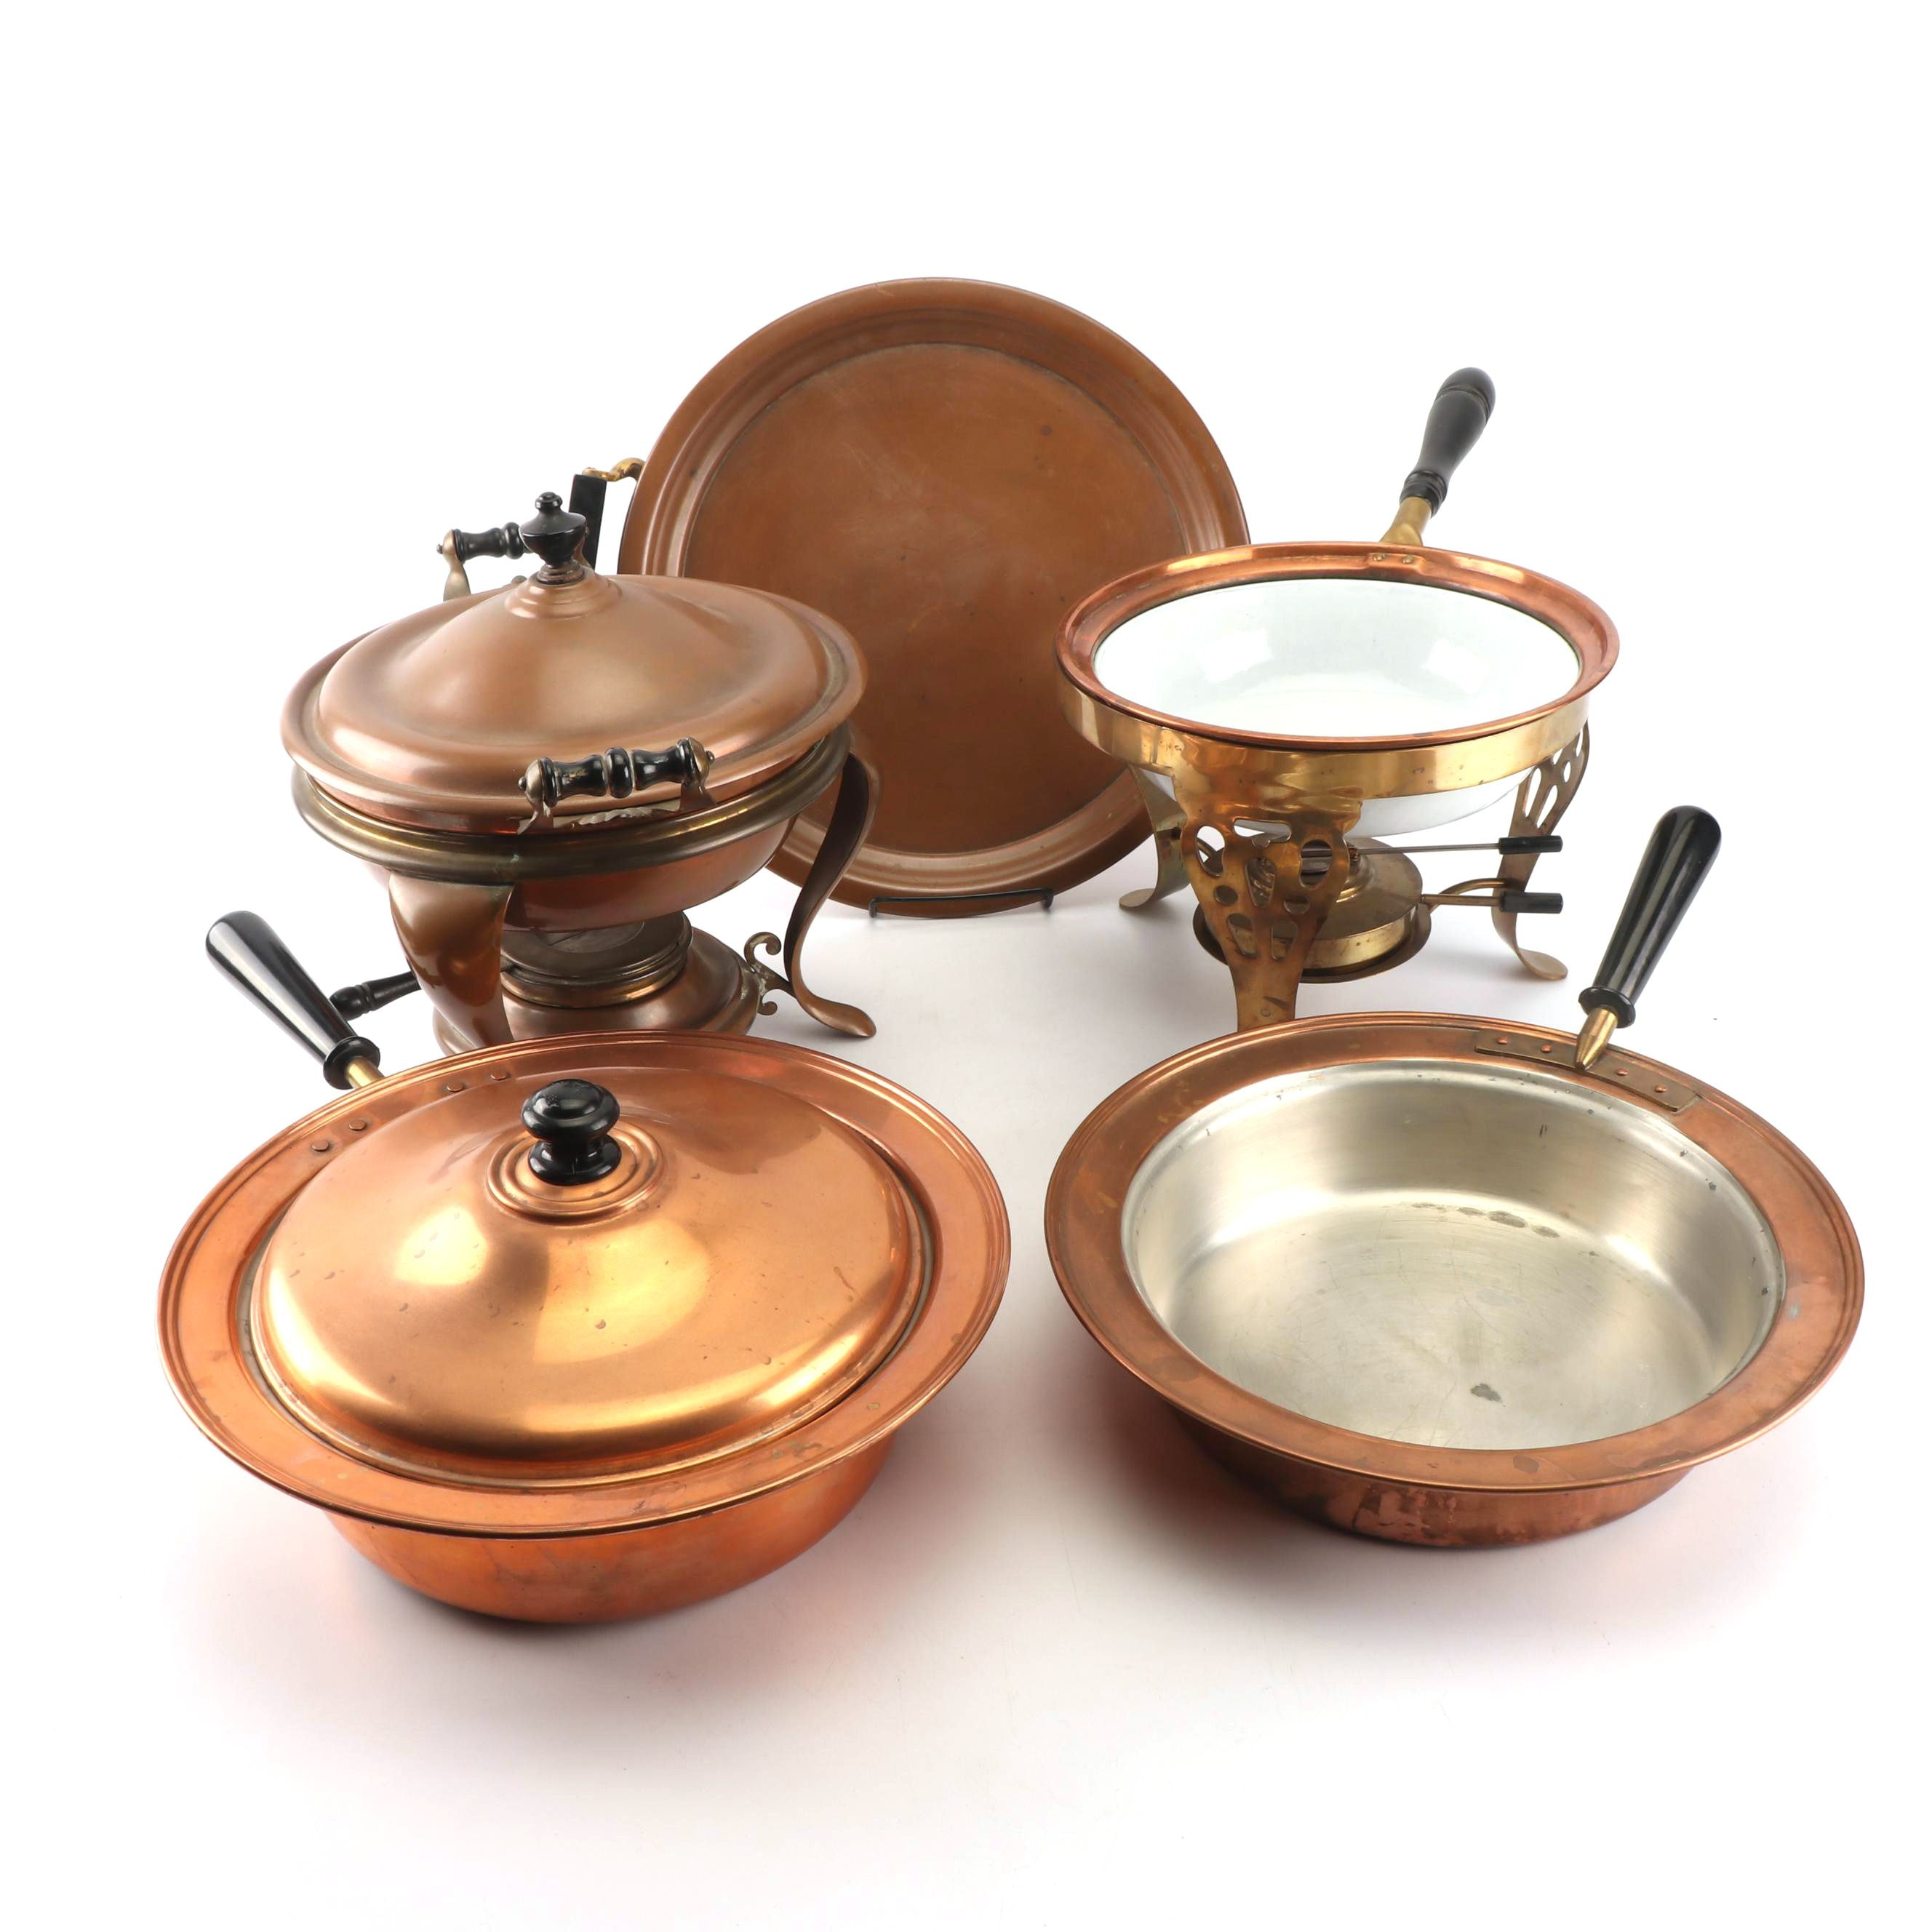 Vintage Copper Chafing Dishes and Serveware